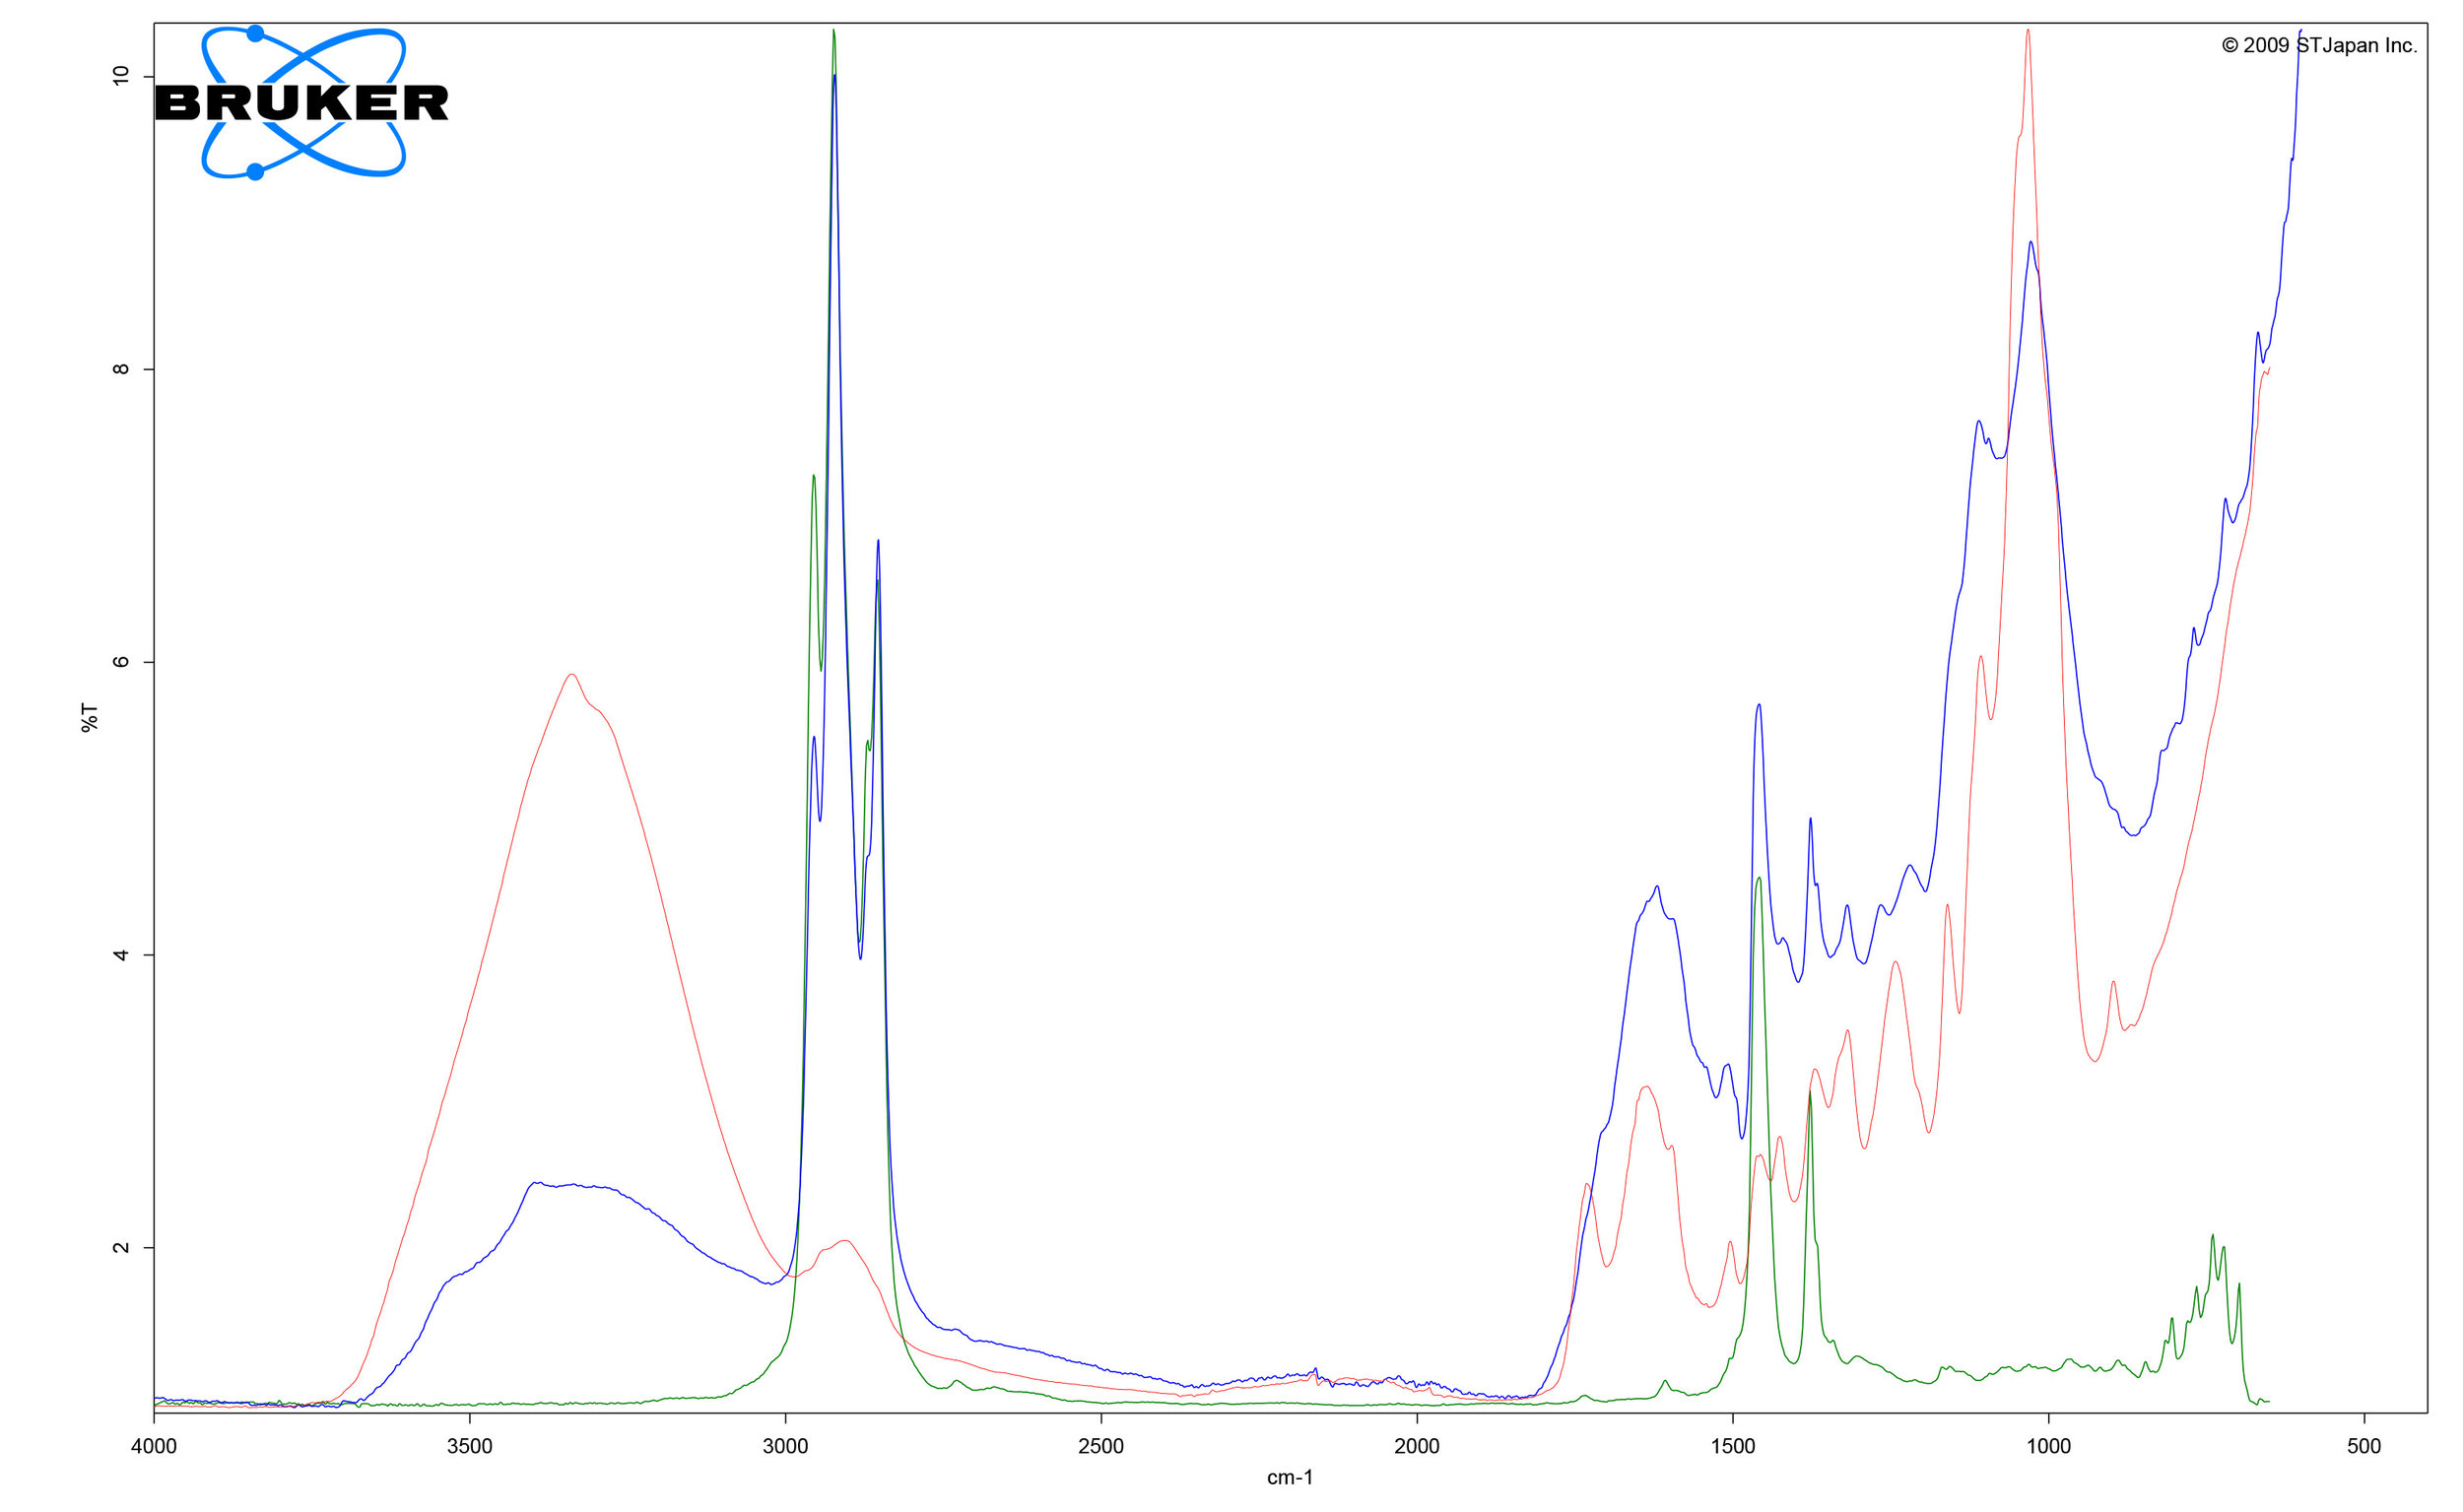 FTIR spectral analysis showing comparison of sample collected from losset 67.1947 (blue), a reference sample for Birch ( Betula pendula ) (red), and a reference sample for natural gypsum (green).